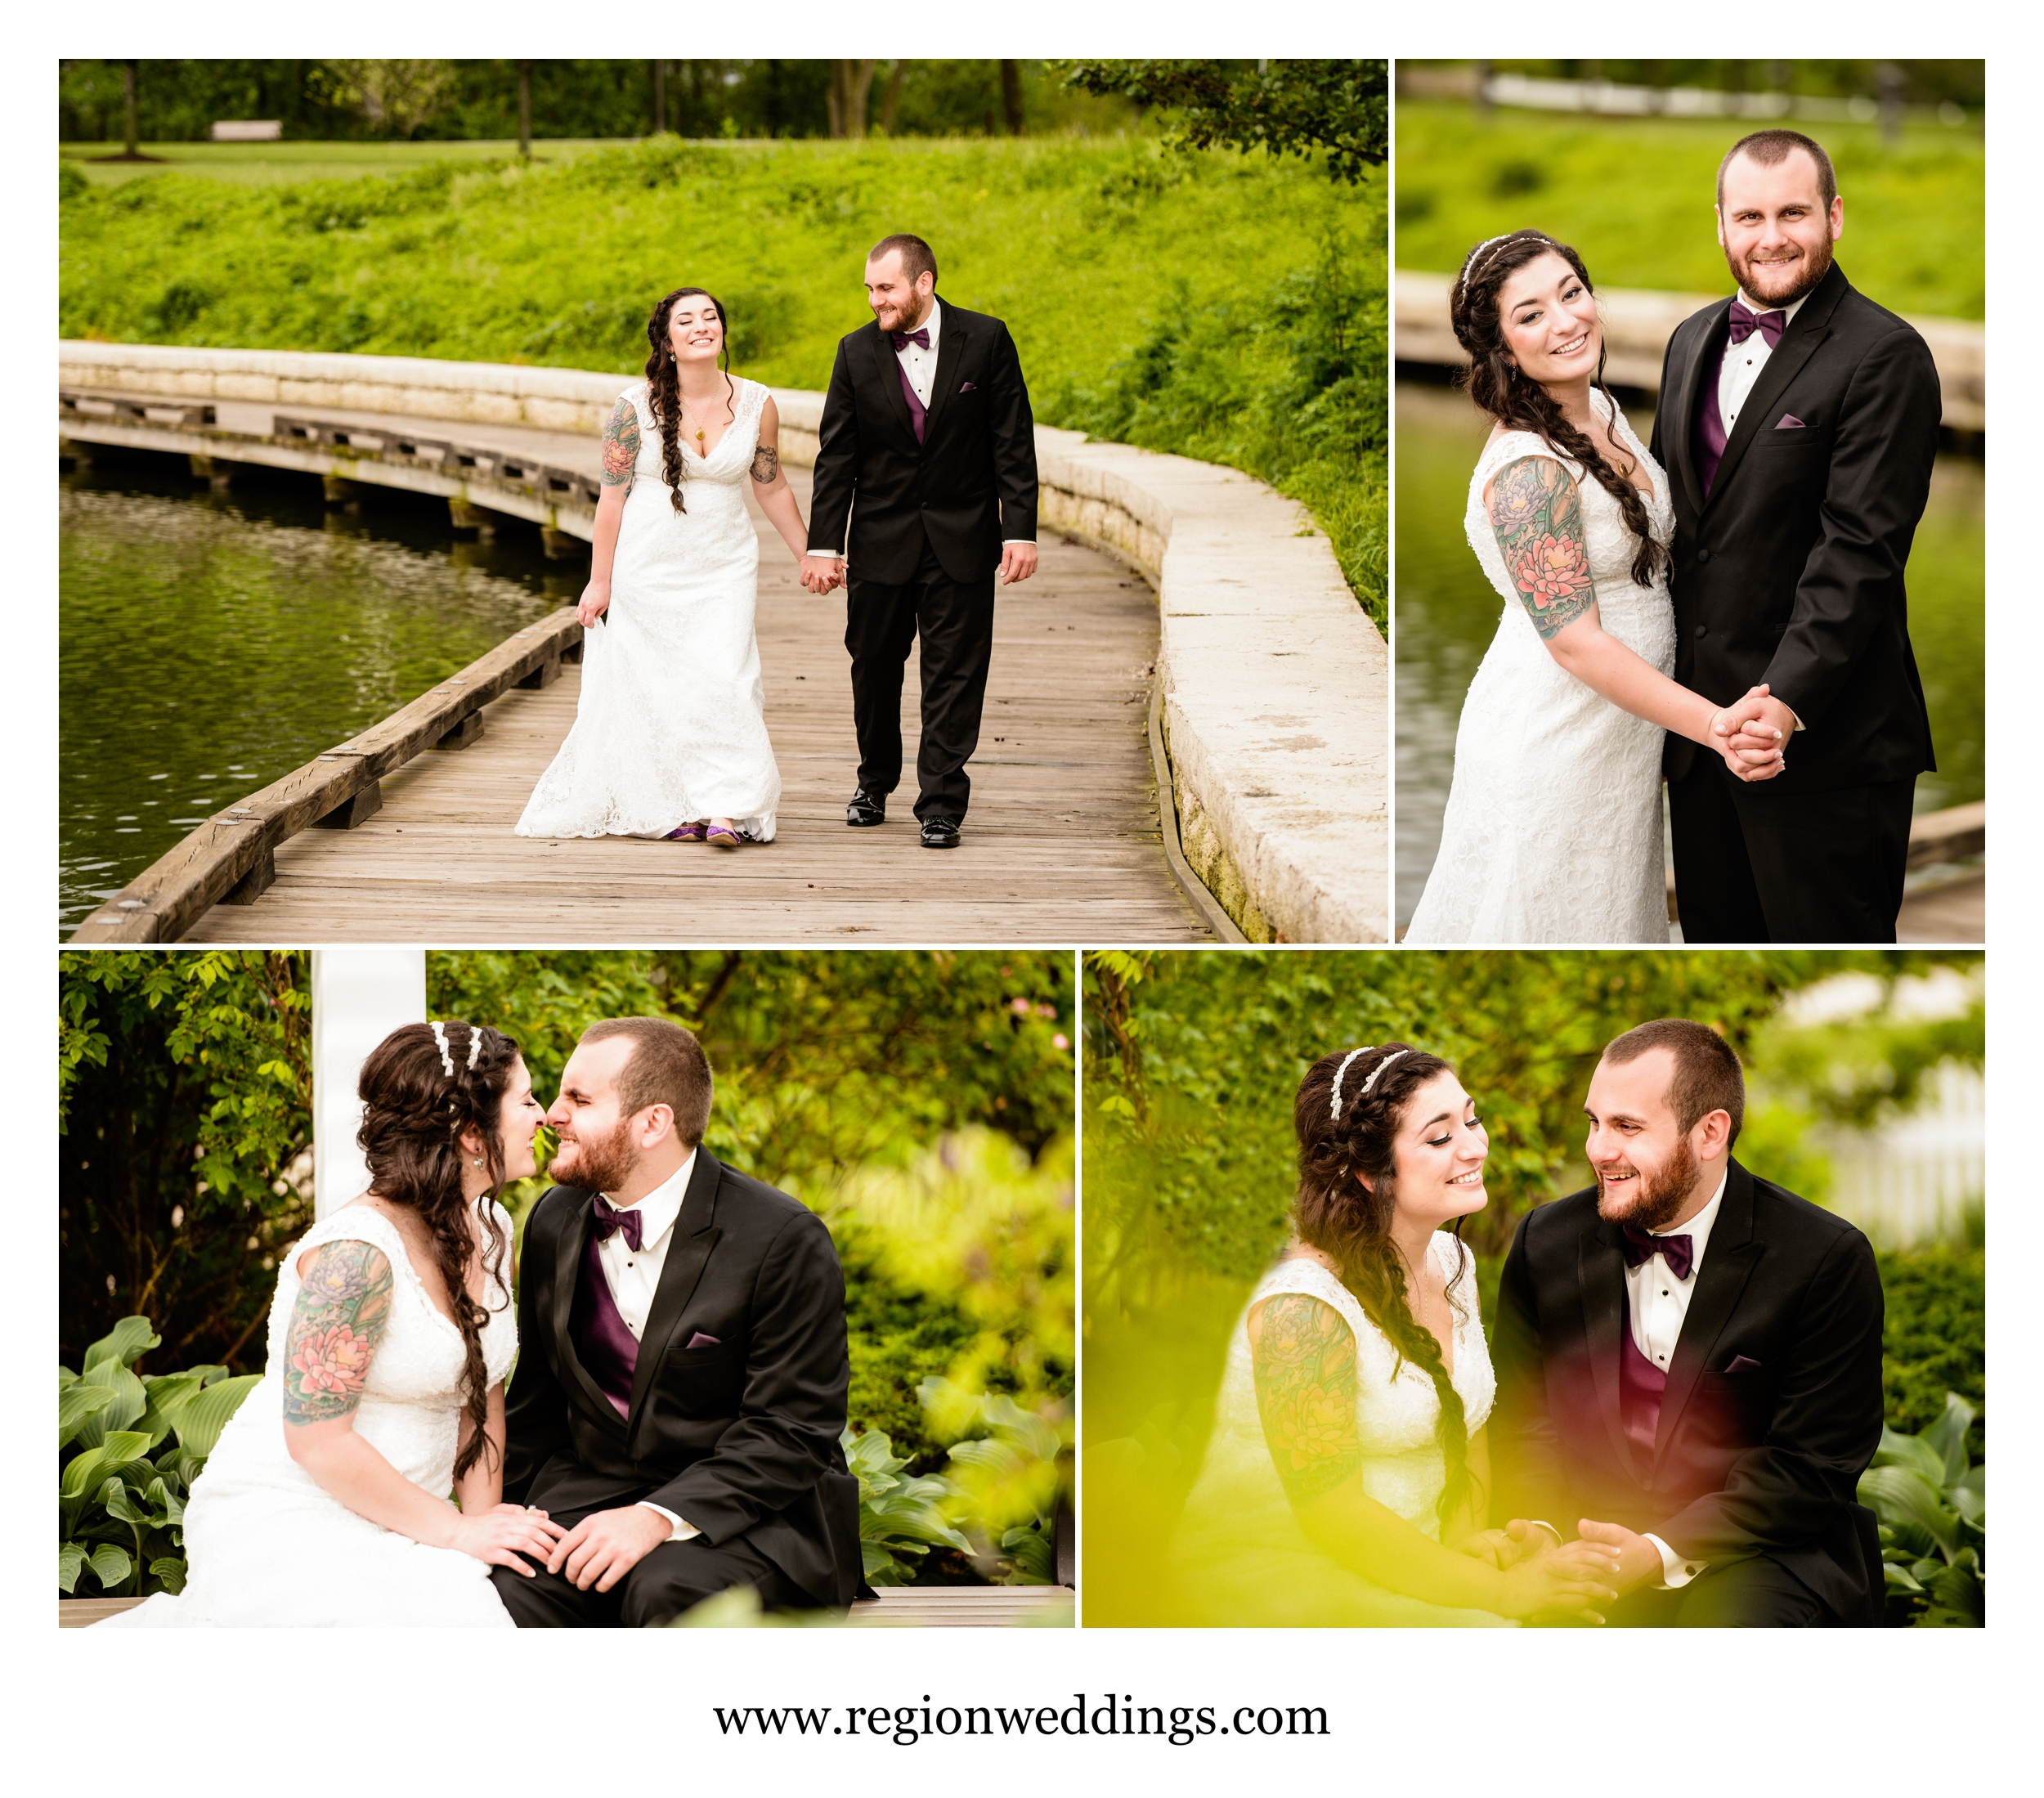 Tender moment for the bride and groom at their Spring wedding.